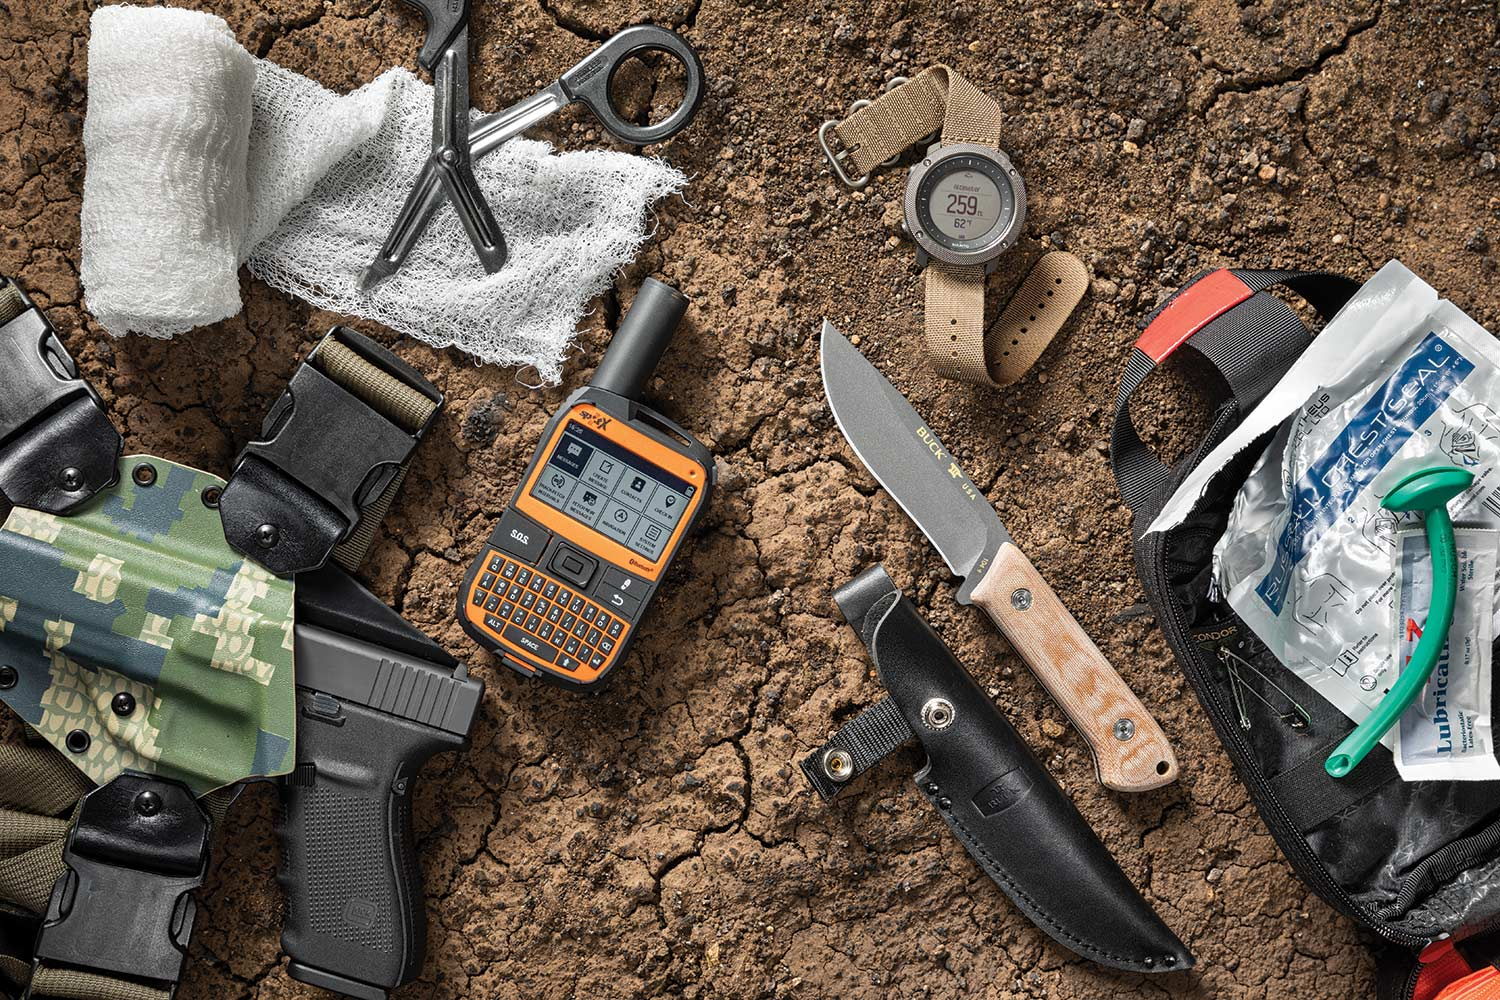 Critical survival gear all ready for action.